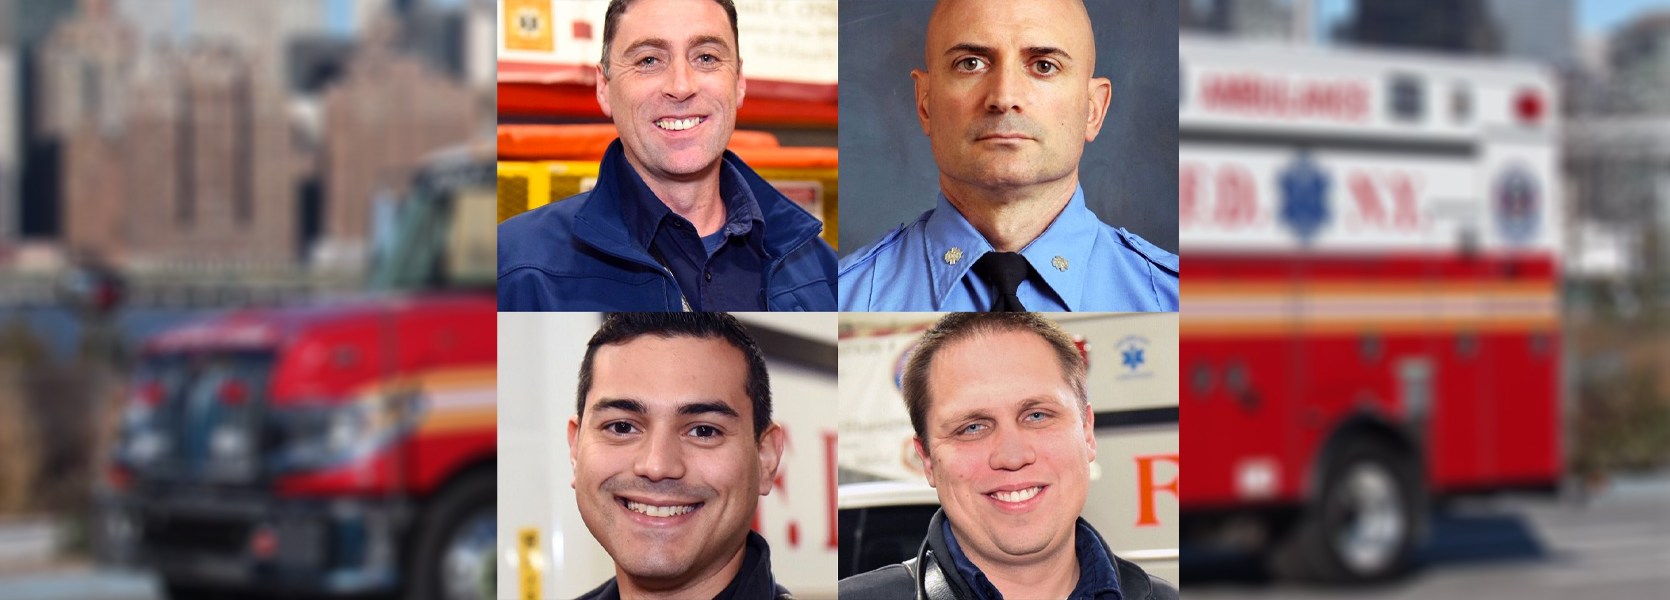 HAZMAT News: Man rescued from basement filled with CO, 4 FDNY paramedics nominated for an award.